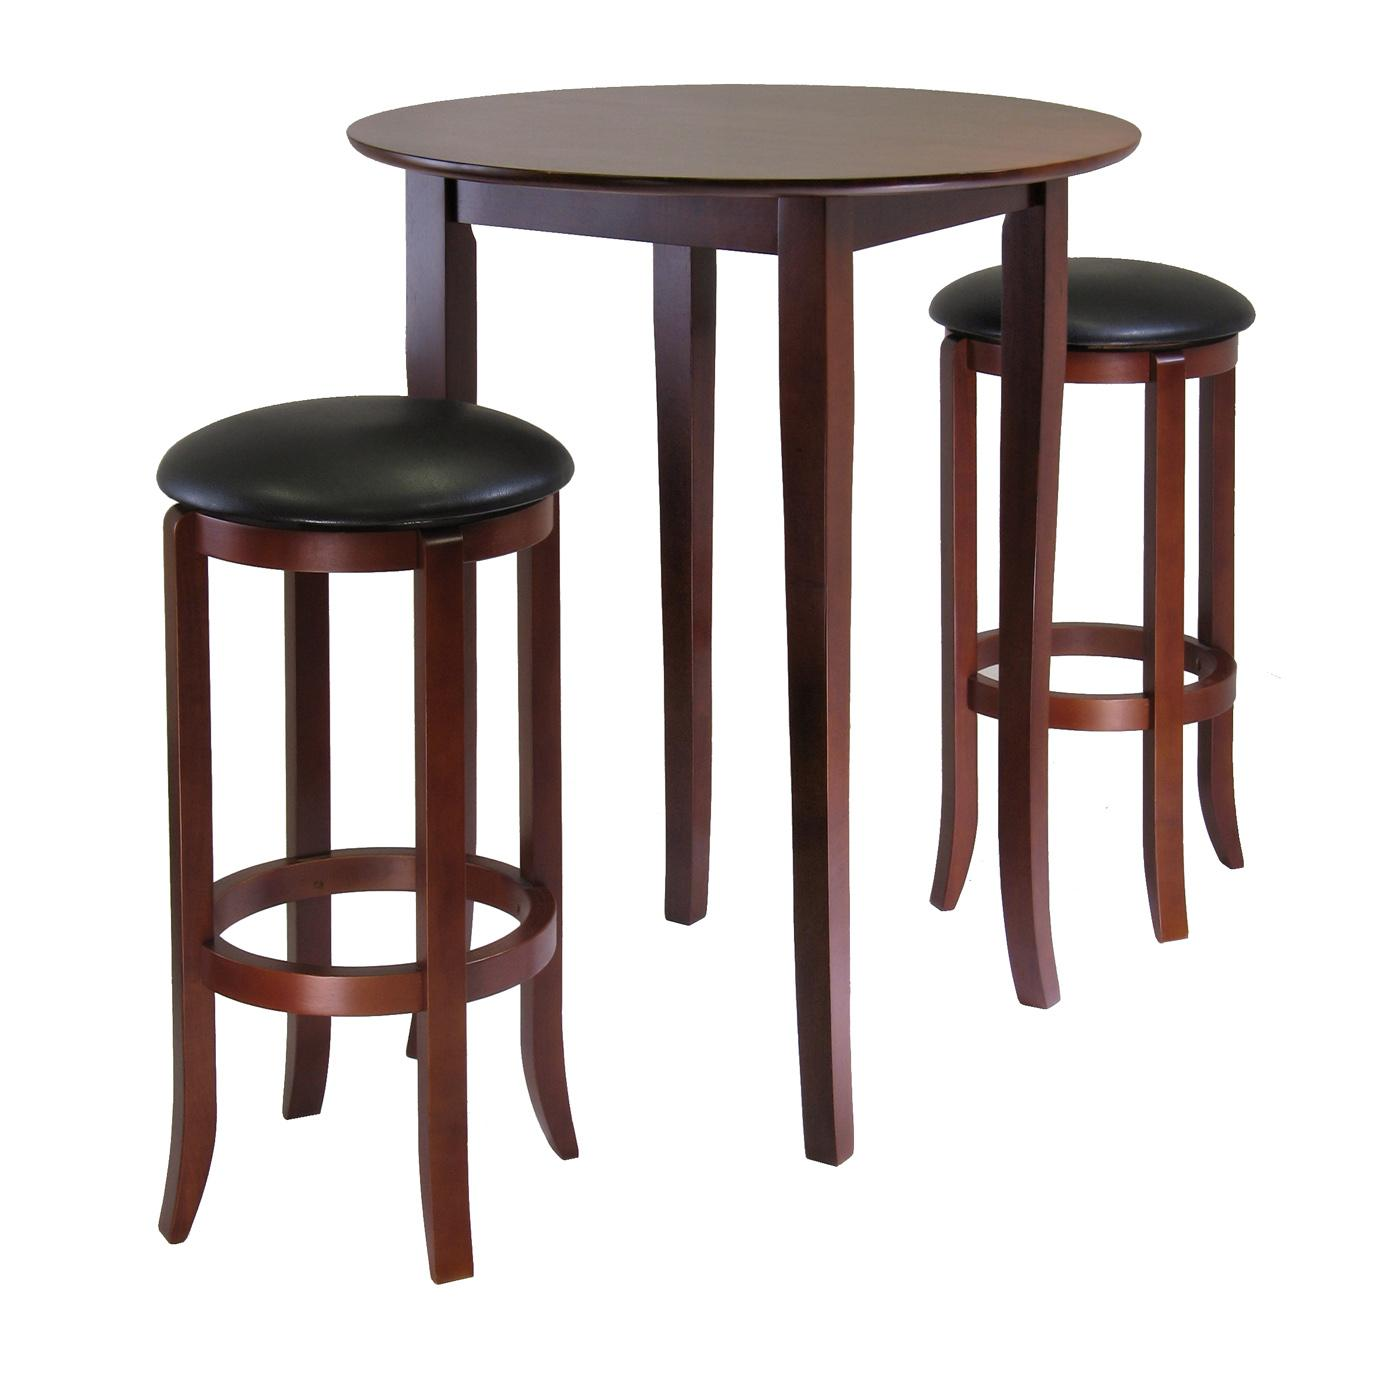 Amazon Winsome Fiona 3 Piece Round High Pub Table Set in